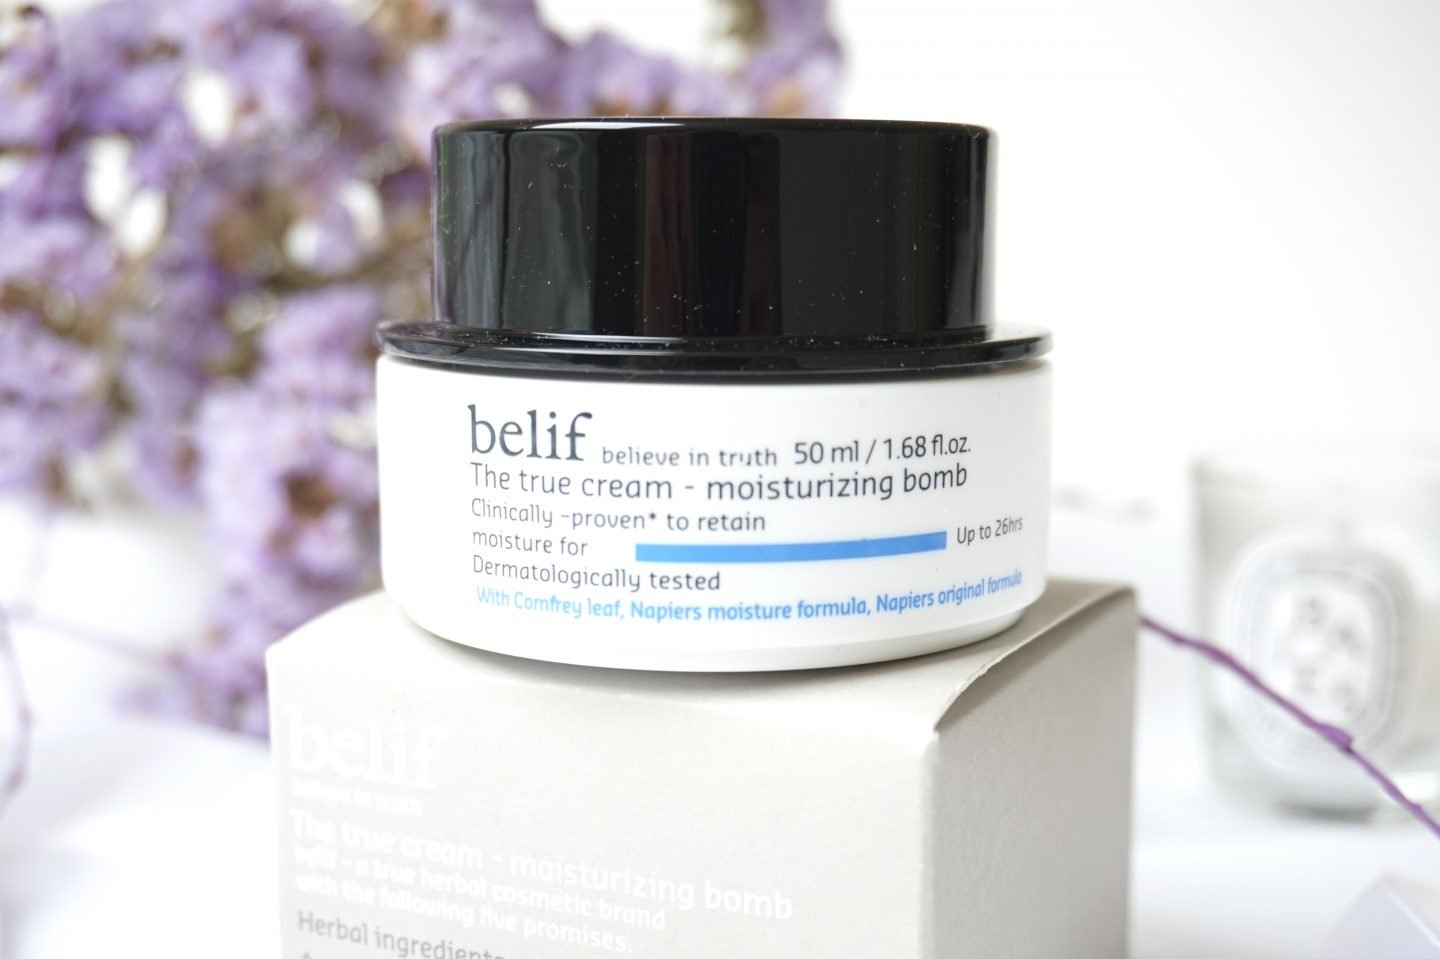 Belif, The True Cream – Moisturizing Bomb